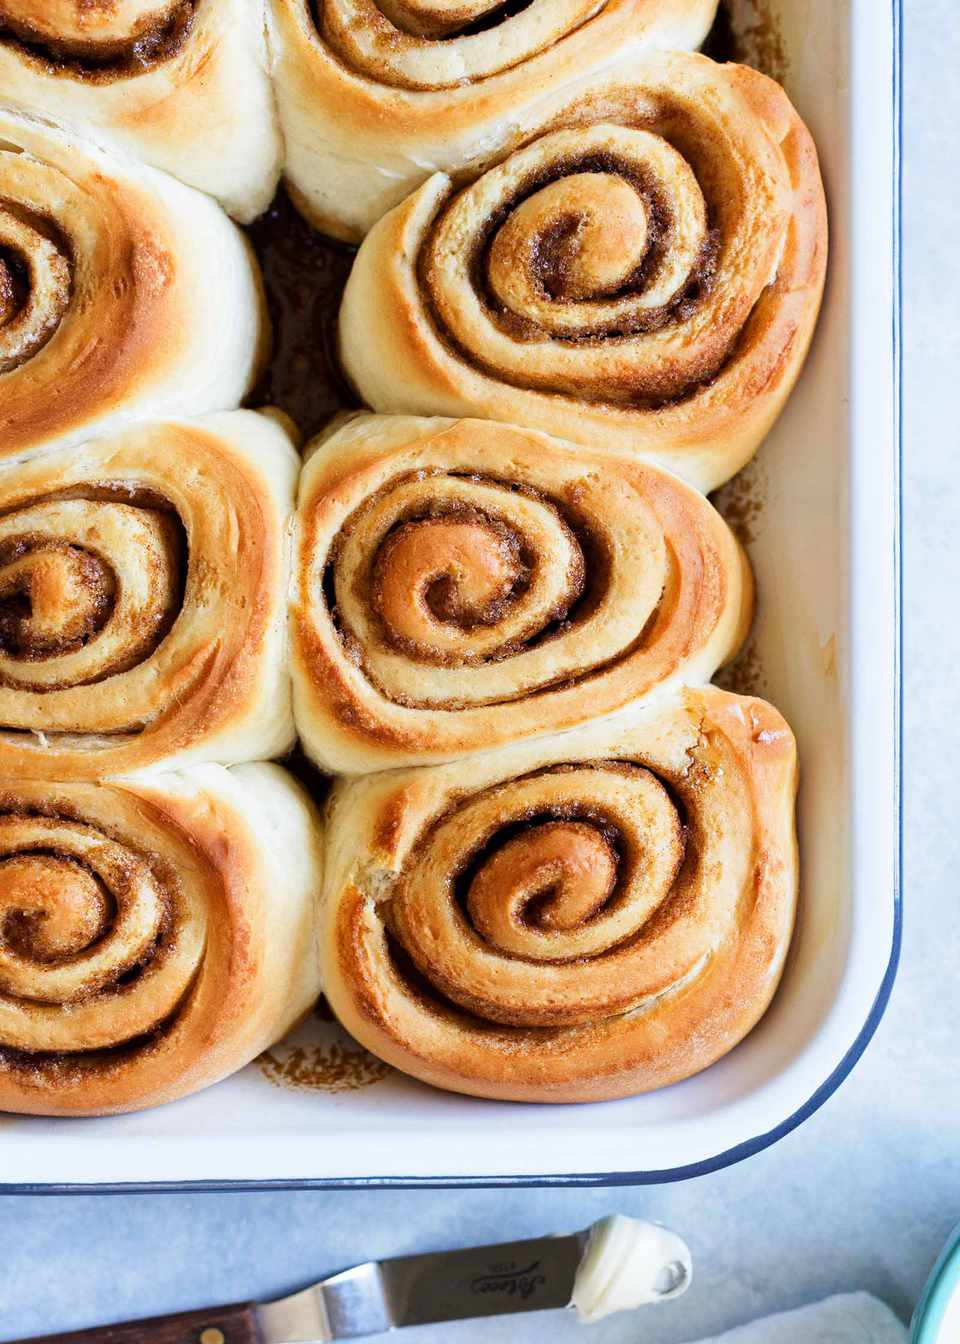 The best cinnamon rolls baked and golden brown in a pan.